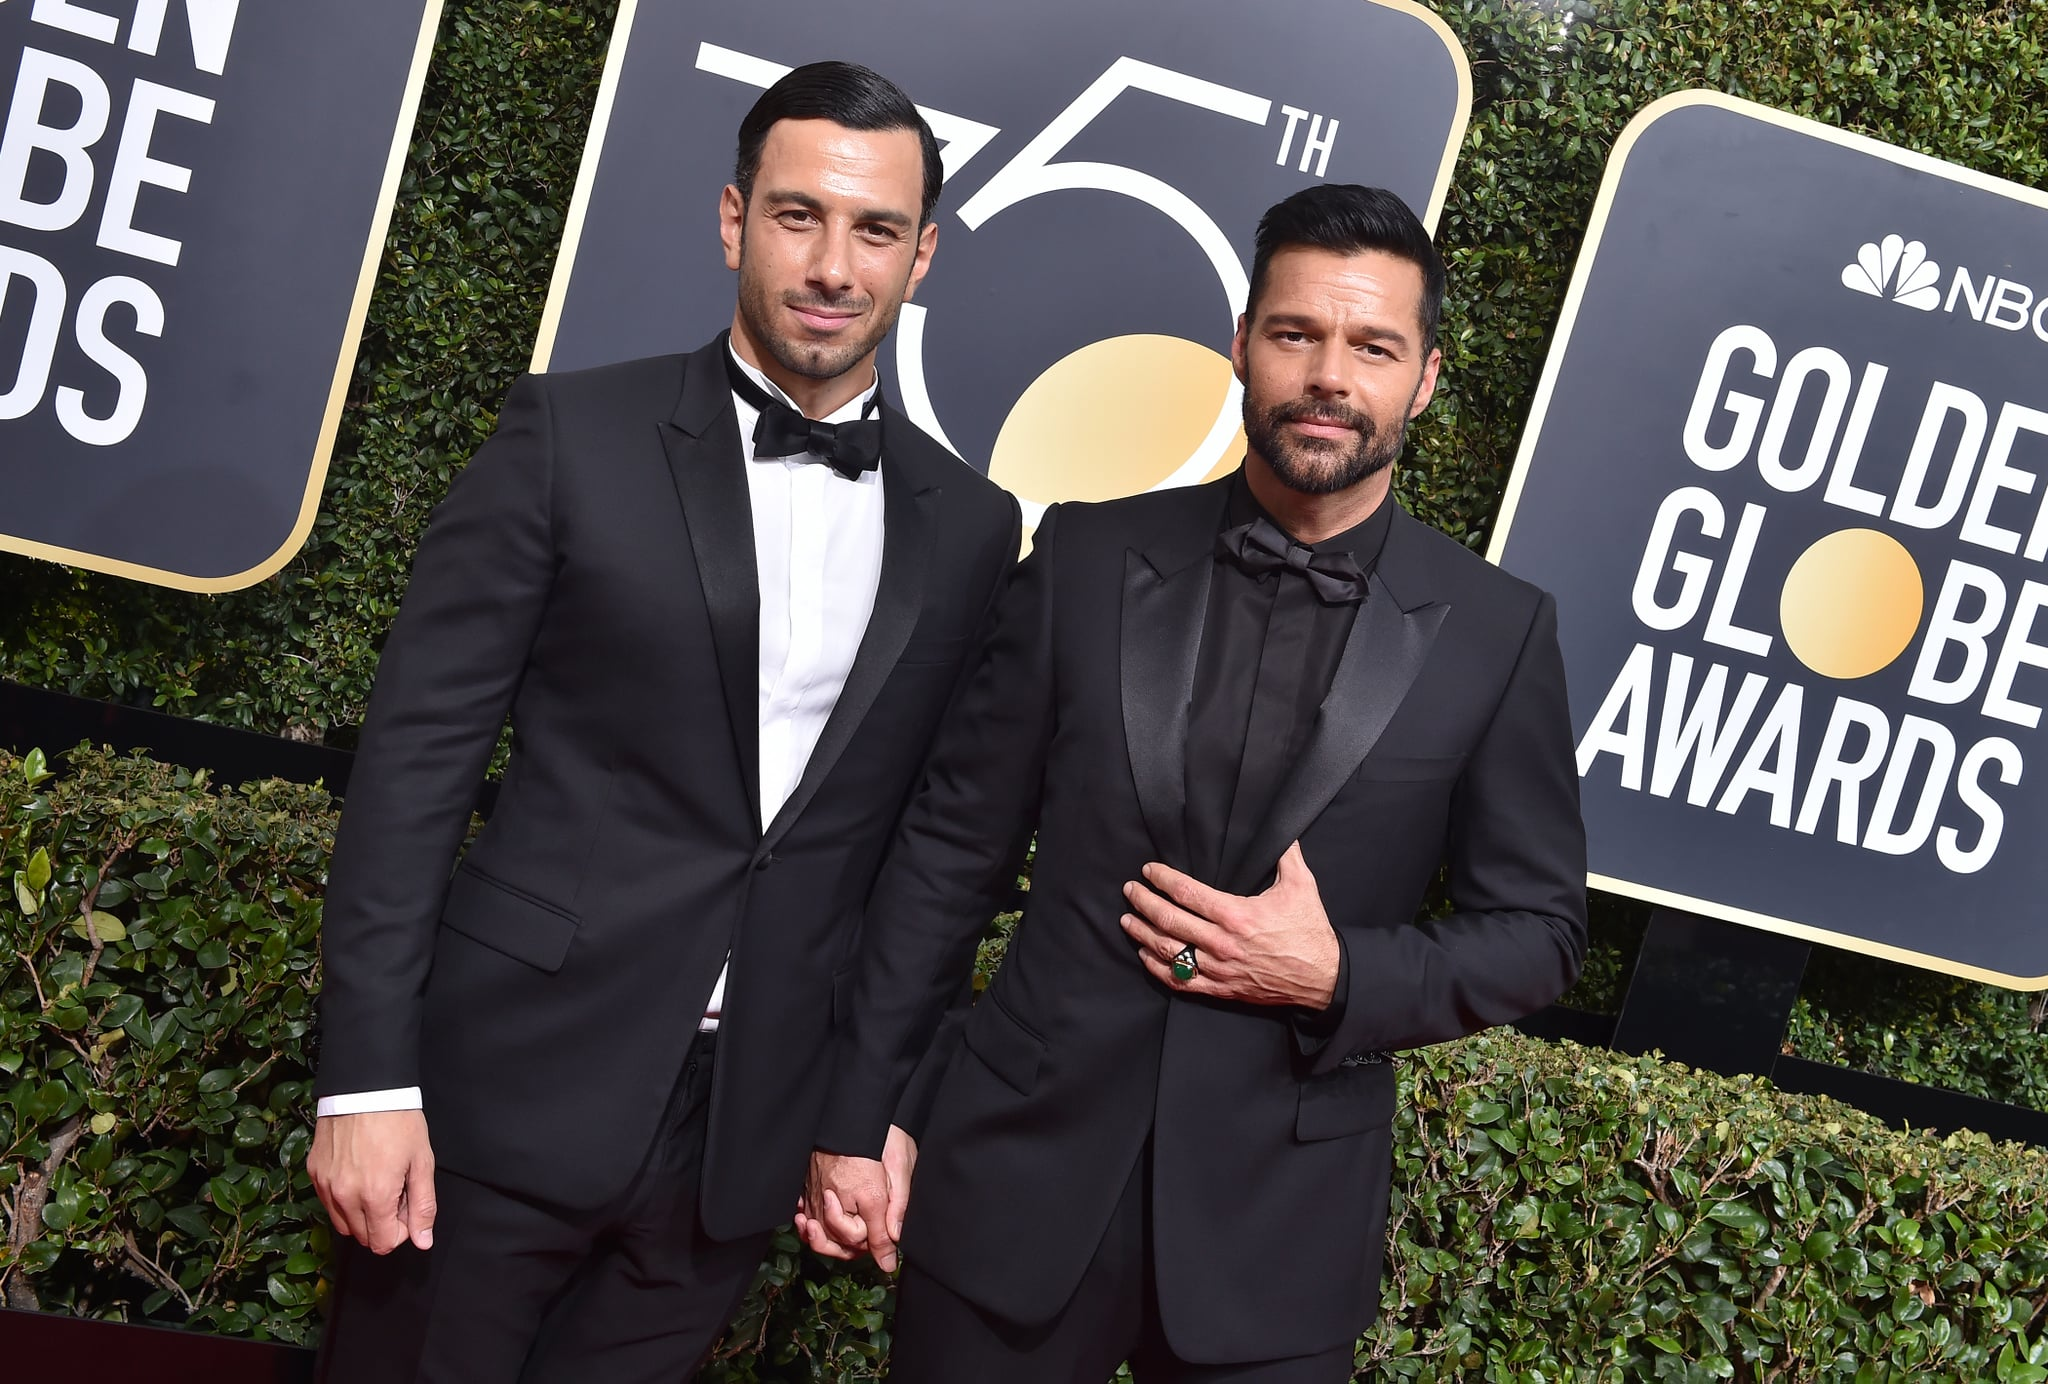 BEVERLY HILLS, CA - JANUARY 07:  Singer Ricky Martin (R) and Jwan Yosef attend the 75th Annual Golden Globe Awards at The Beverly Hilton Hotel on January 7, 2018 in Beverly Hills, California.  (Photo by Axelle/Bauer-Griffin/FilmMagic)